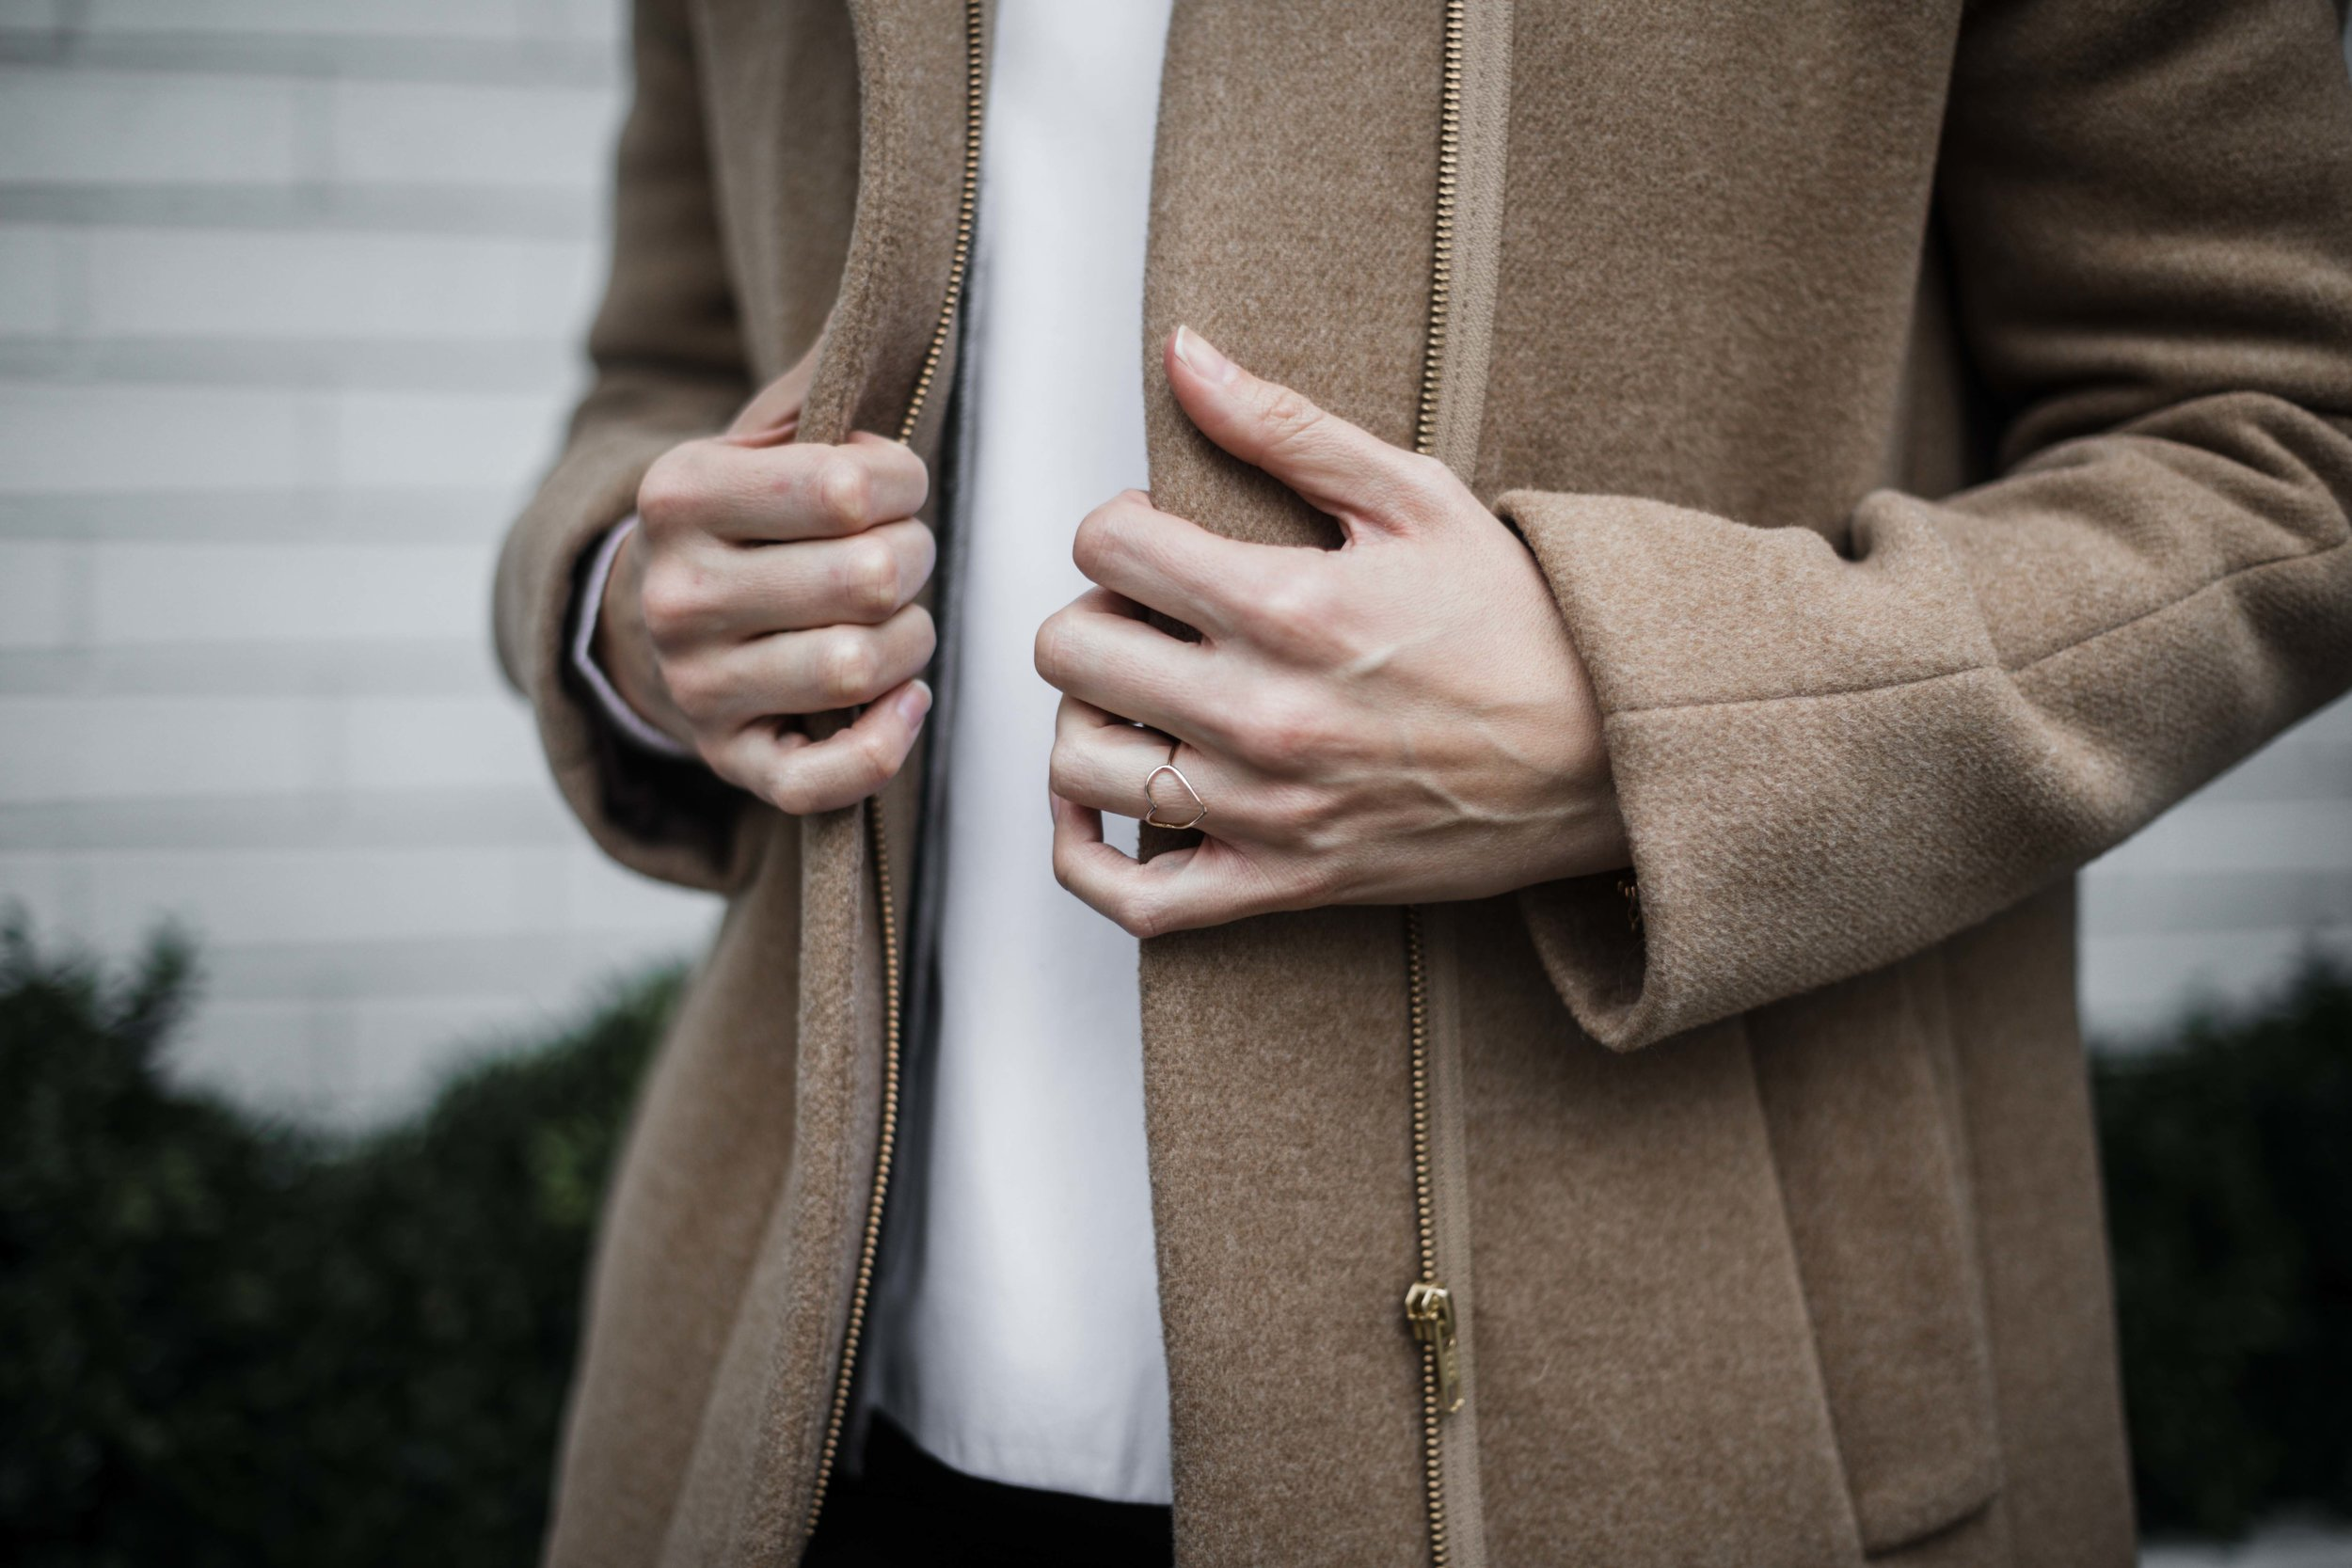 Delicate heart shaped ring by Chicago jewelry designer grace + hudson